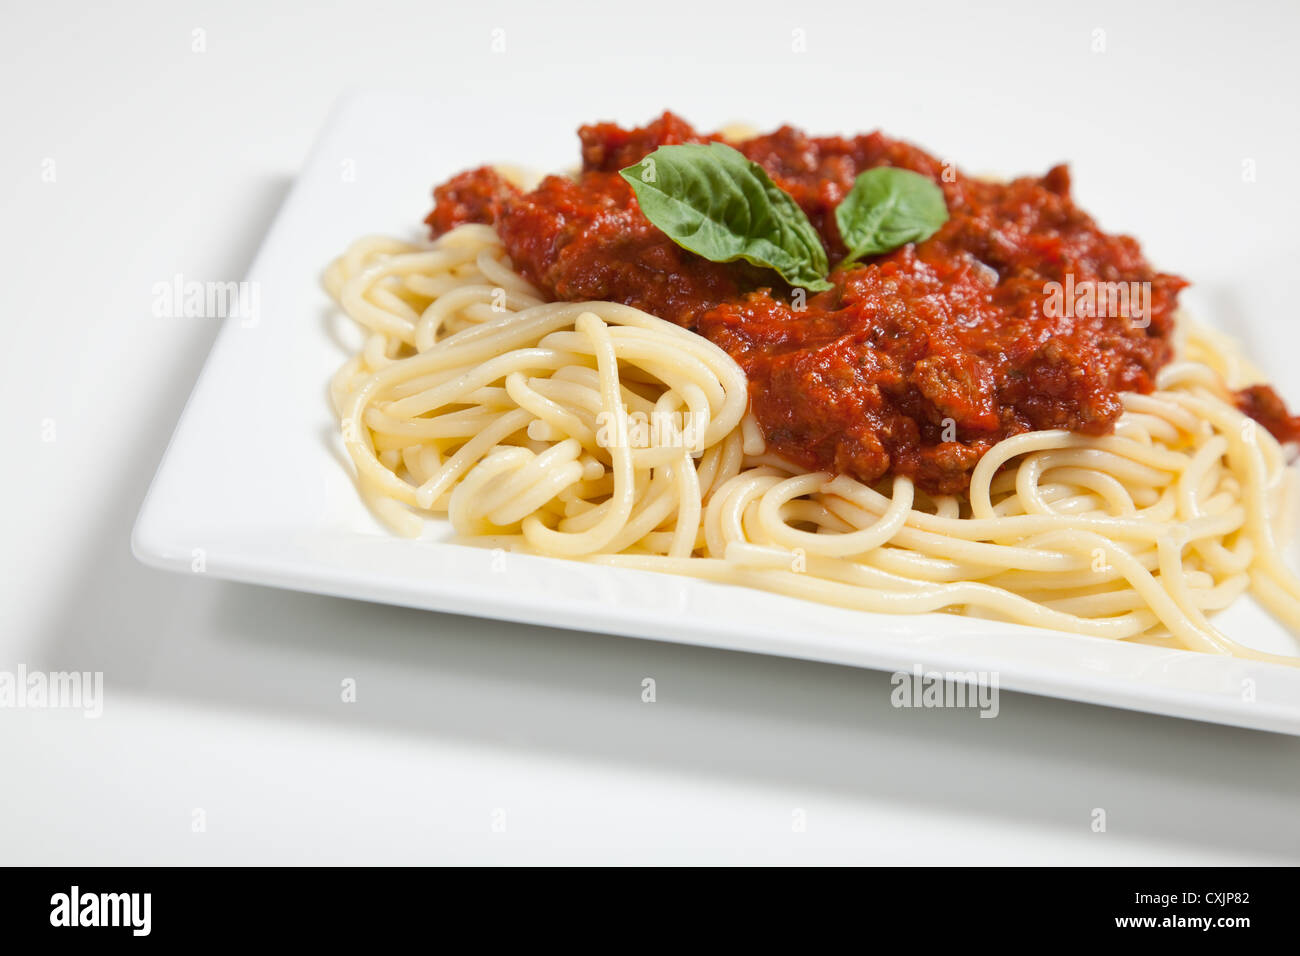 Spaghetti with meat sauce on a white background - Stock Image